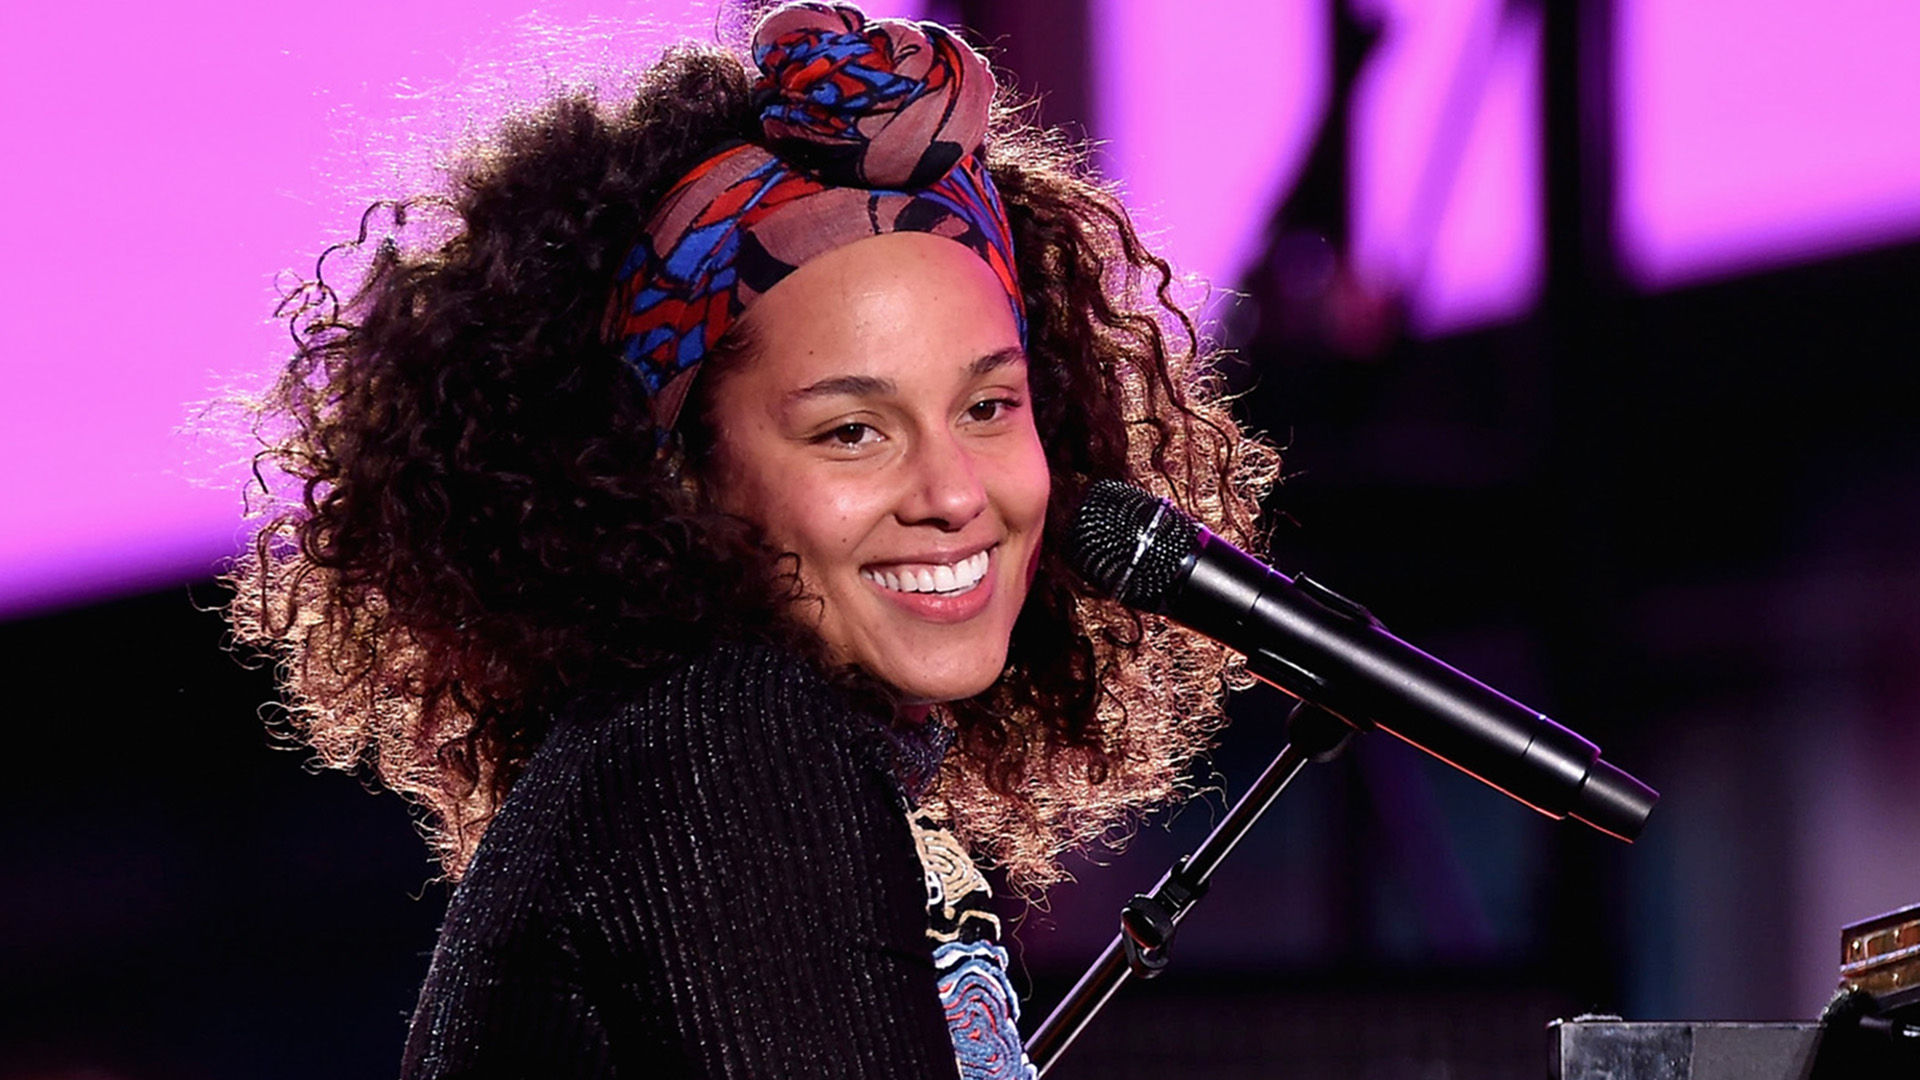 Alicia Keys: Alicia Keys Debuts Her Brand-new Orange And Pink Braids